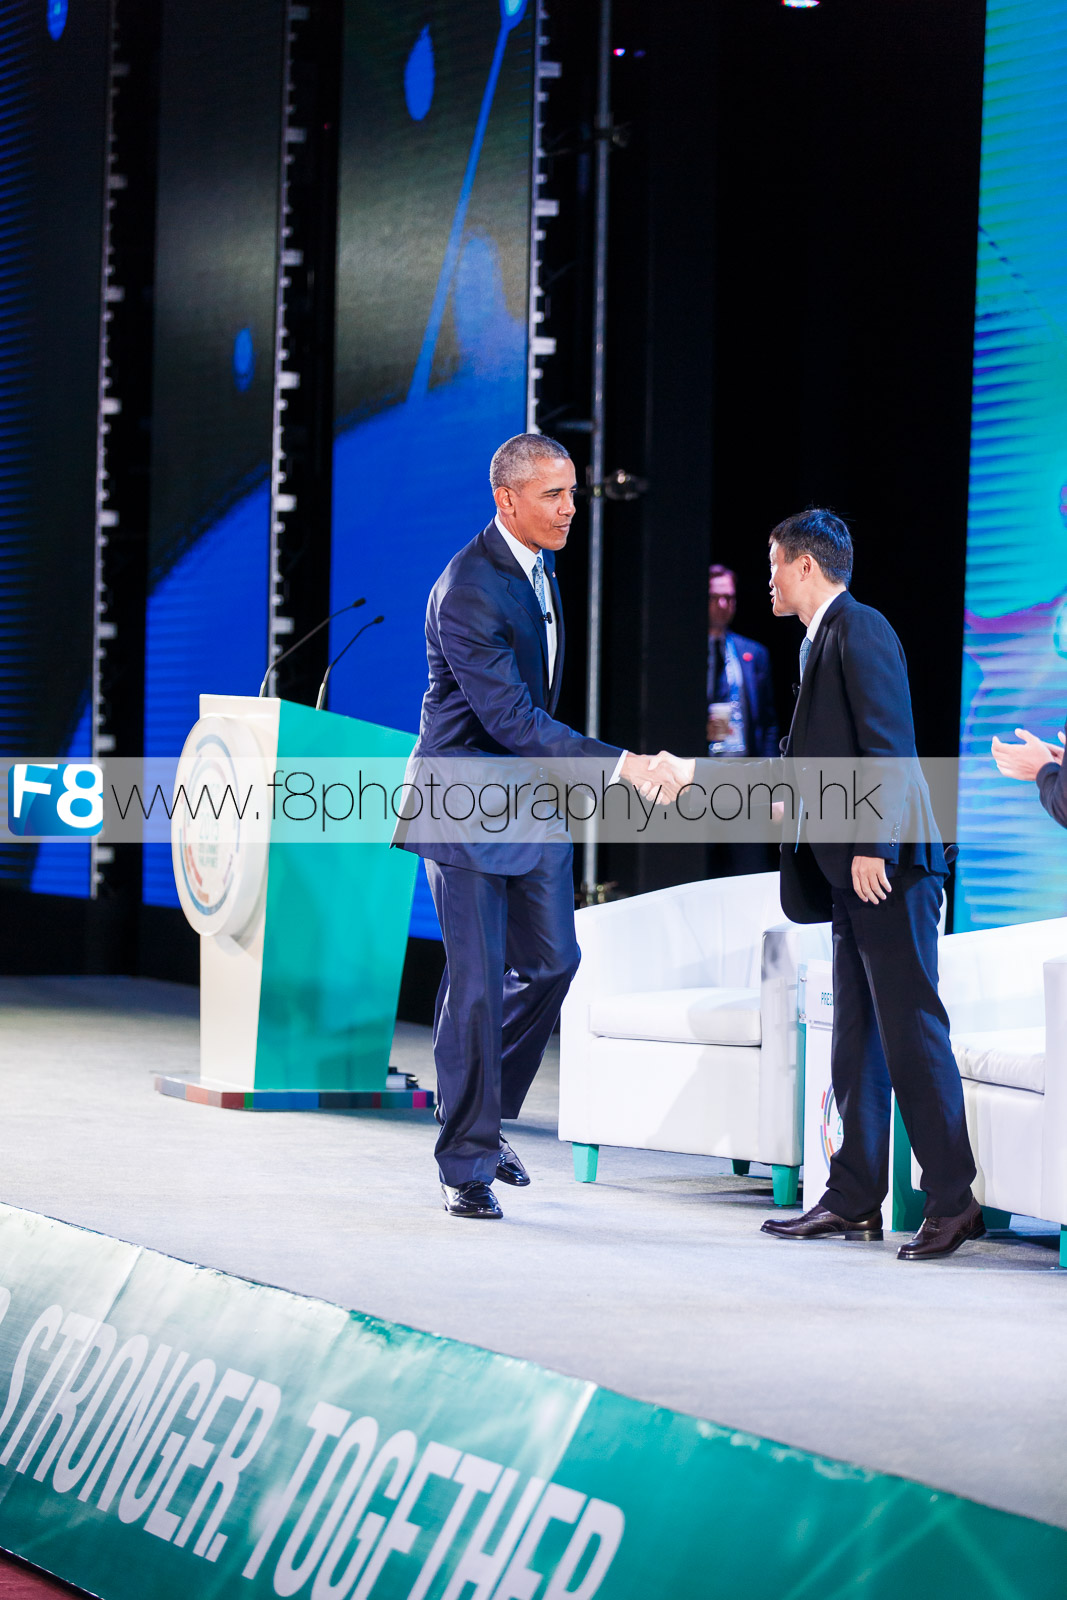 A highlight of the APEC SUMMIT, President Barack Obama greeting Jack Ma (Alibaba.com founder)